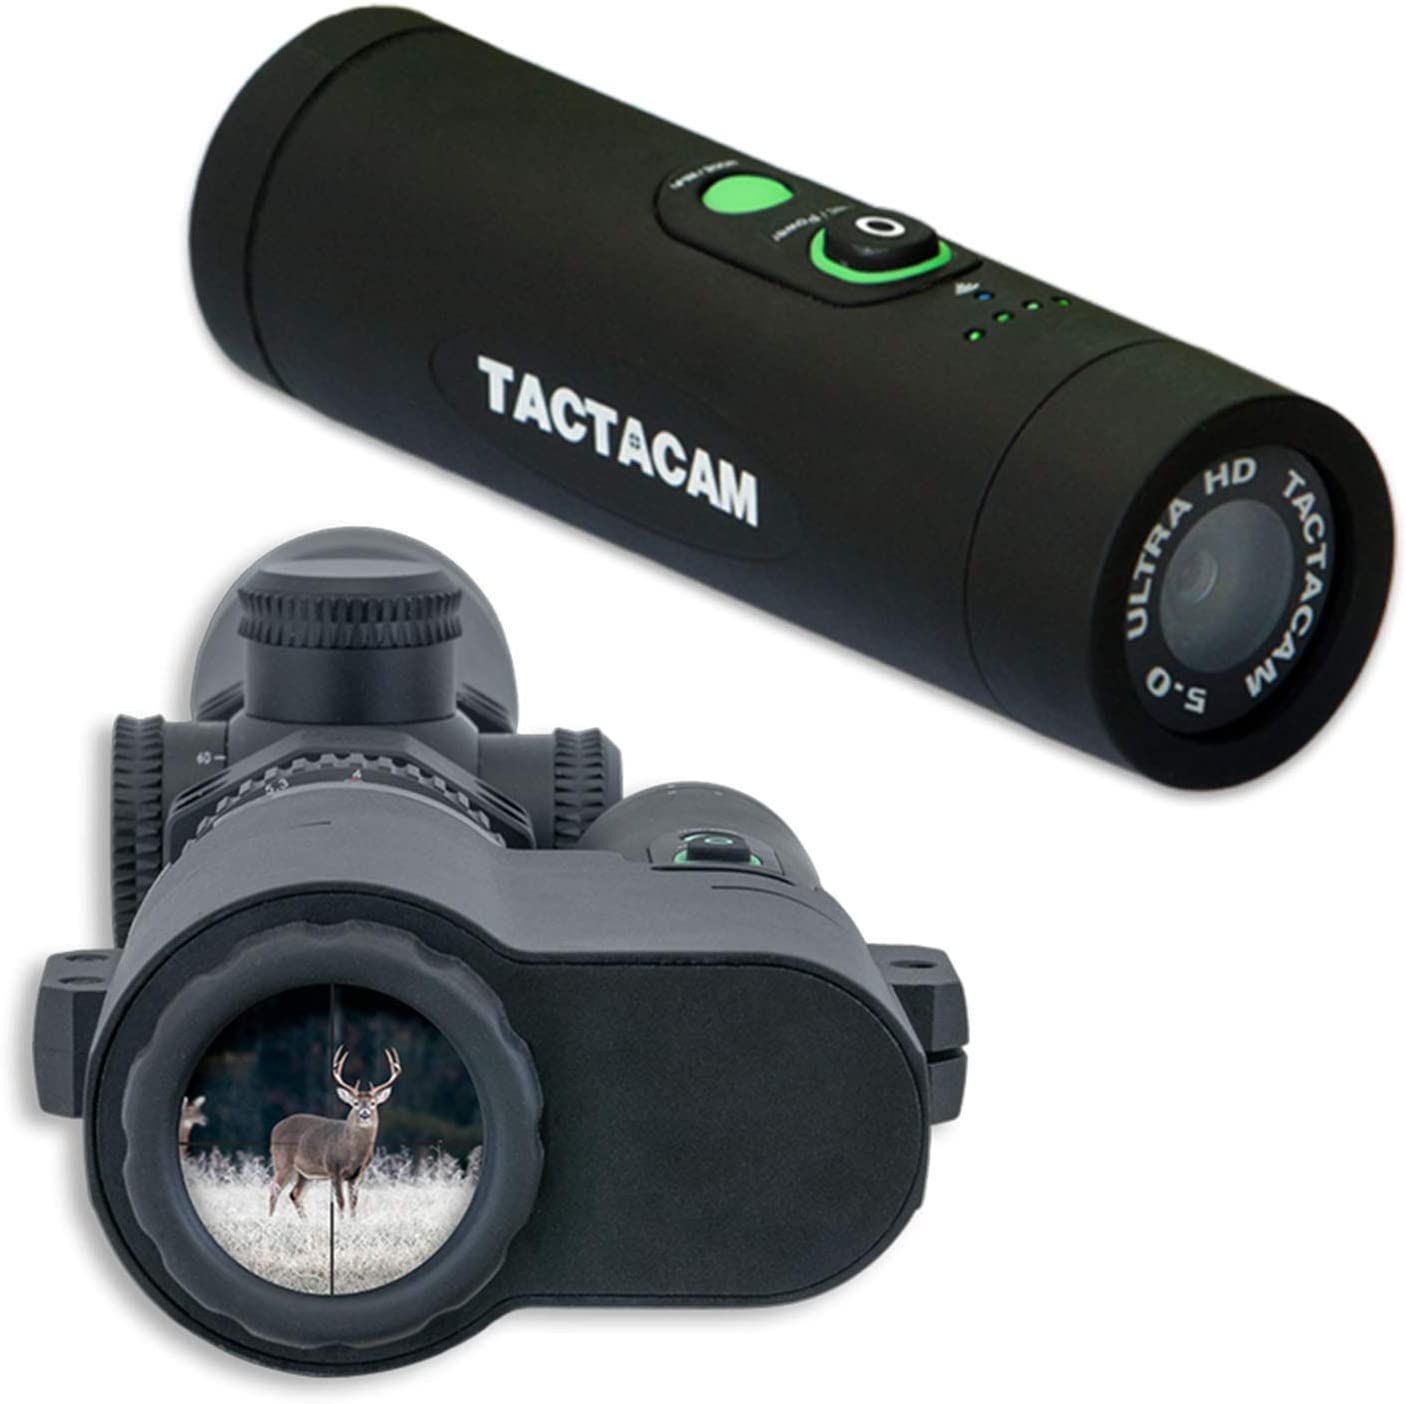 TACTACAM 2021 model 5.0 Hunting Max 52% OFF Action Camera Long Package Includ Range -